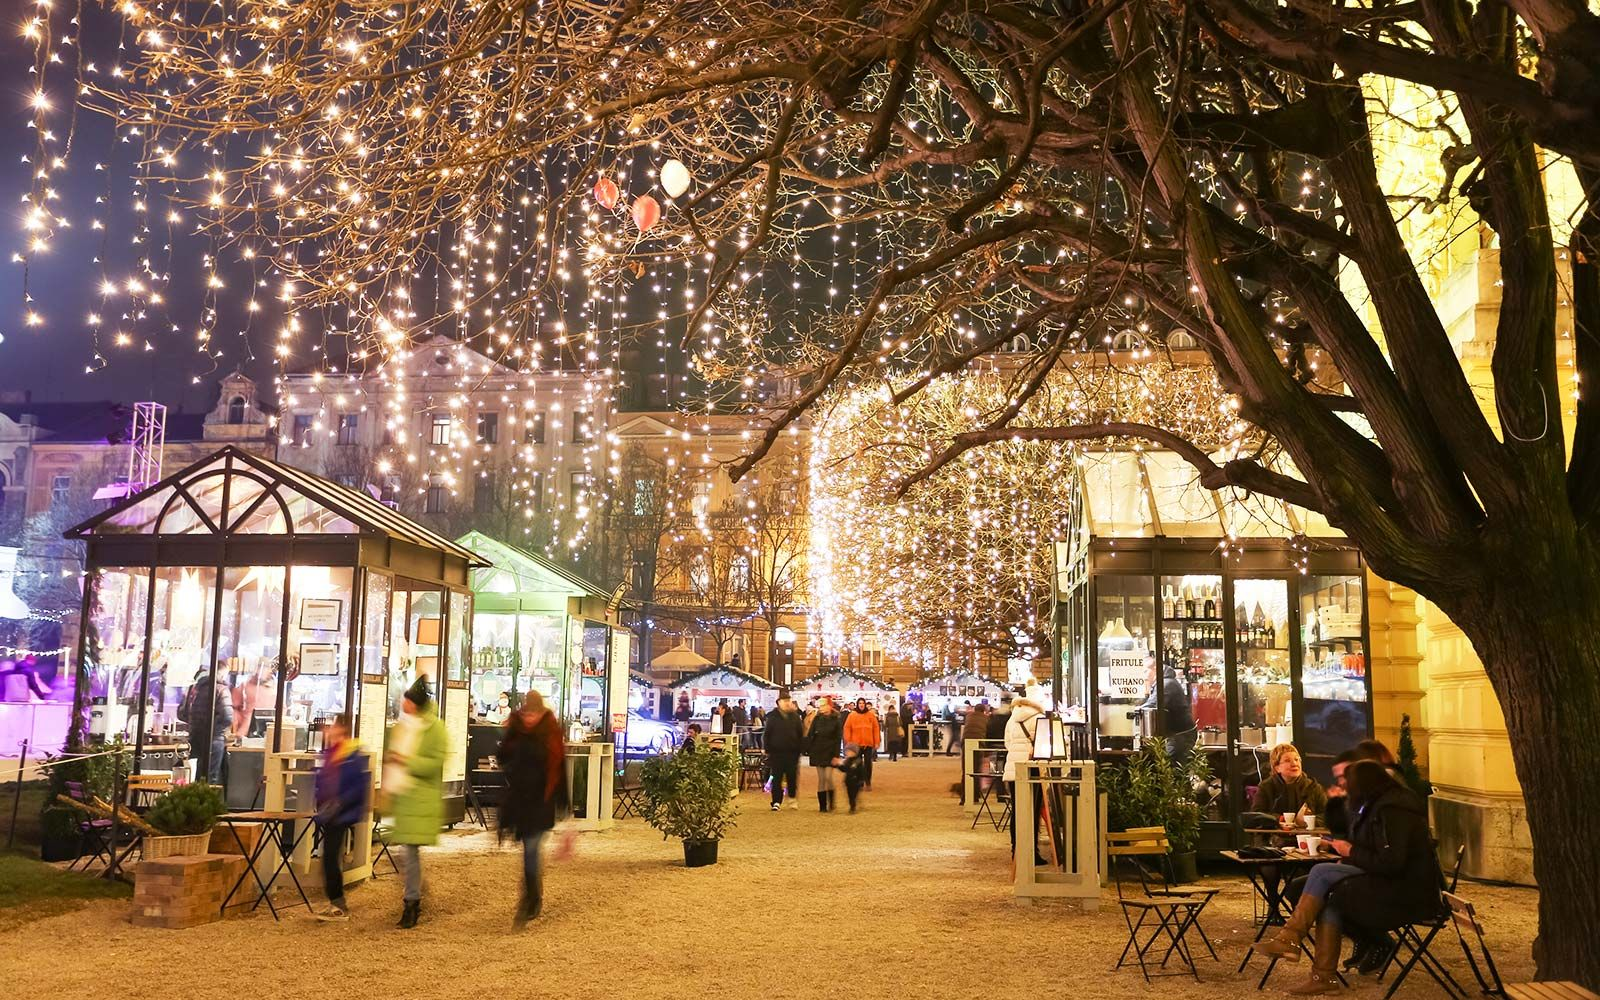 This Magical Christmas Market Was Voted Europe S Best For The Third Straight Year The Market Christmas Markets Europe Best Christmas Markets Christmas Market